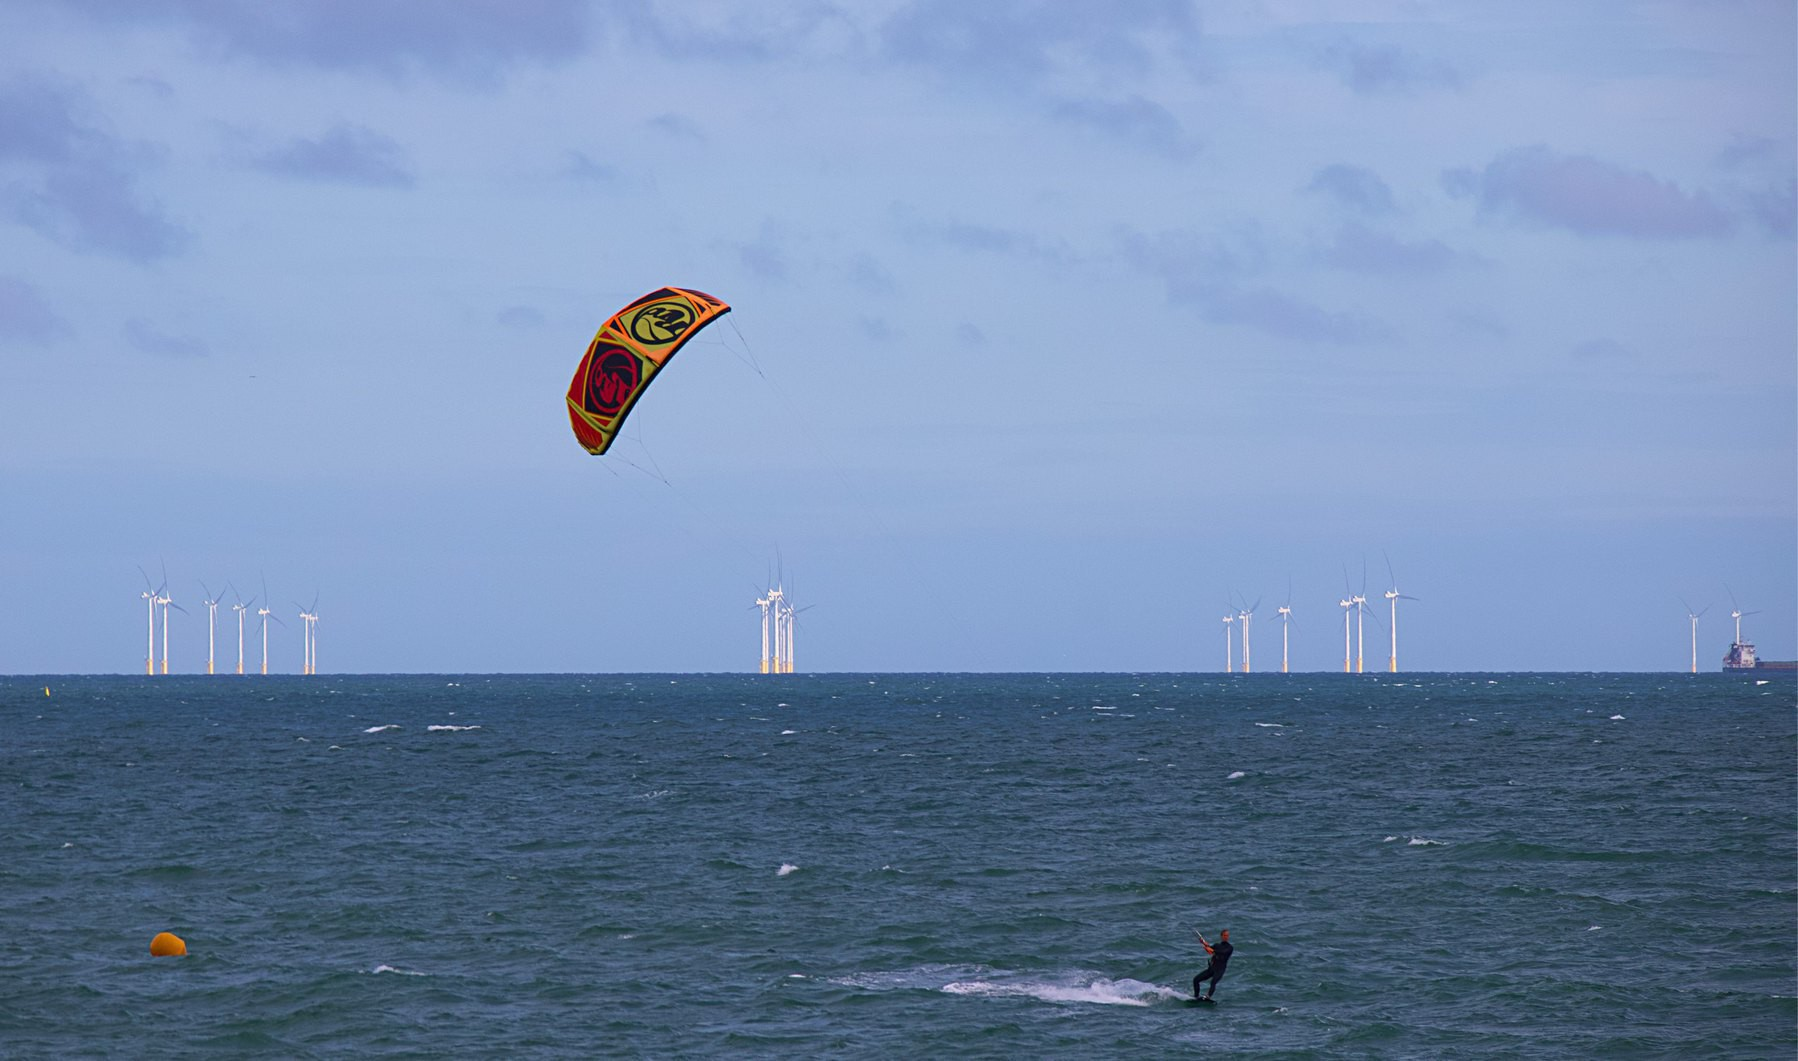 A kitesurfer surfing in front of the Rampion Wind Farm.